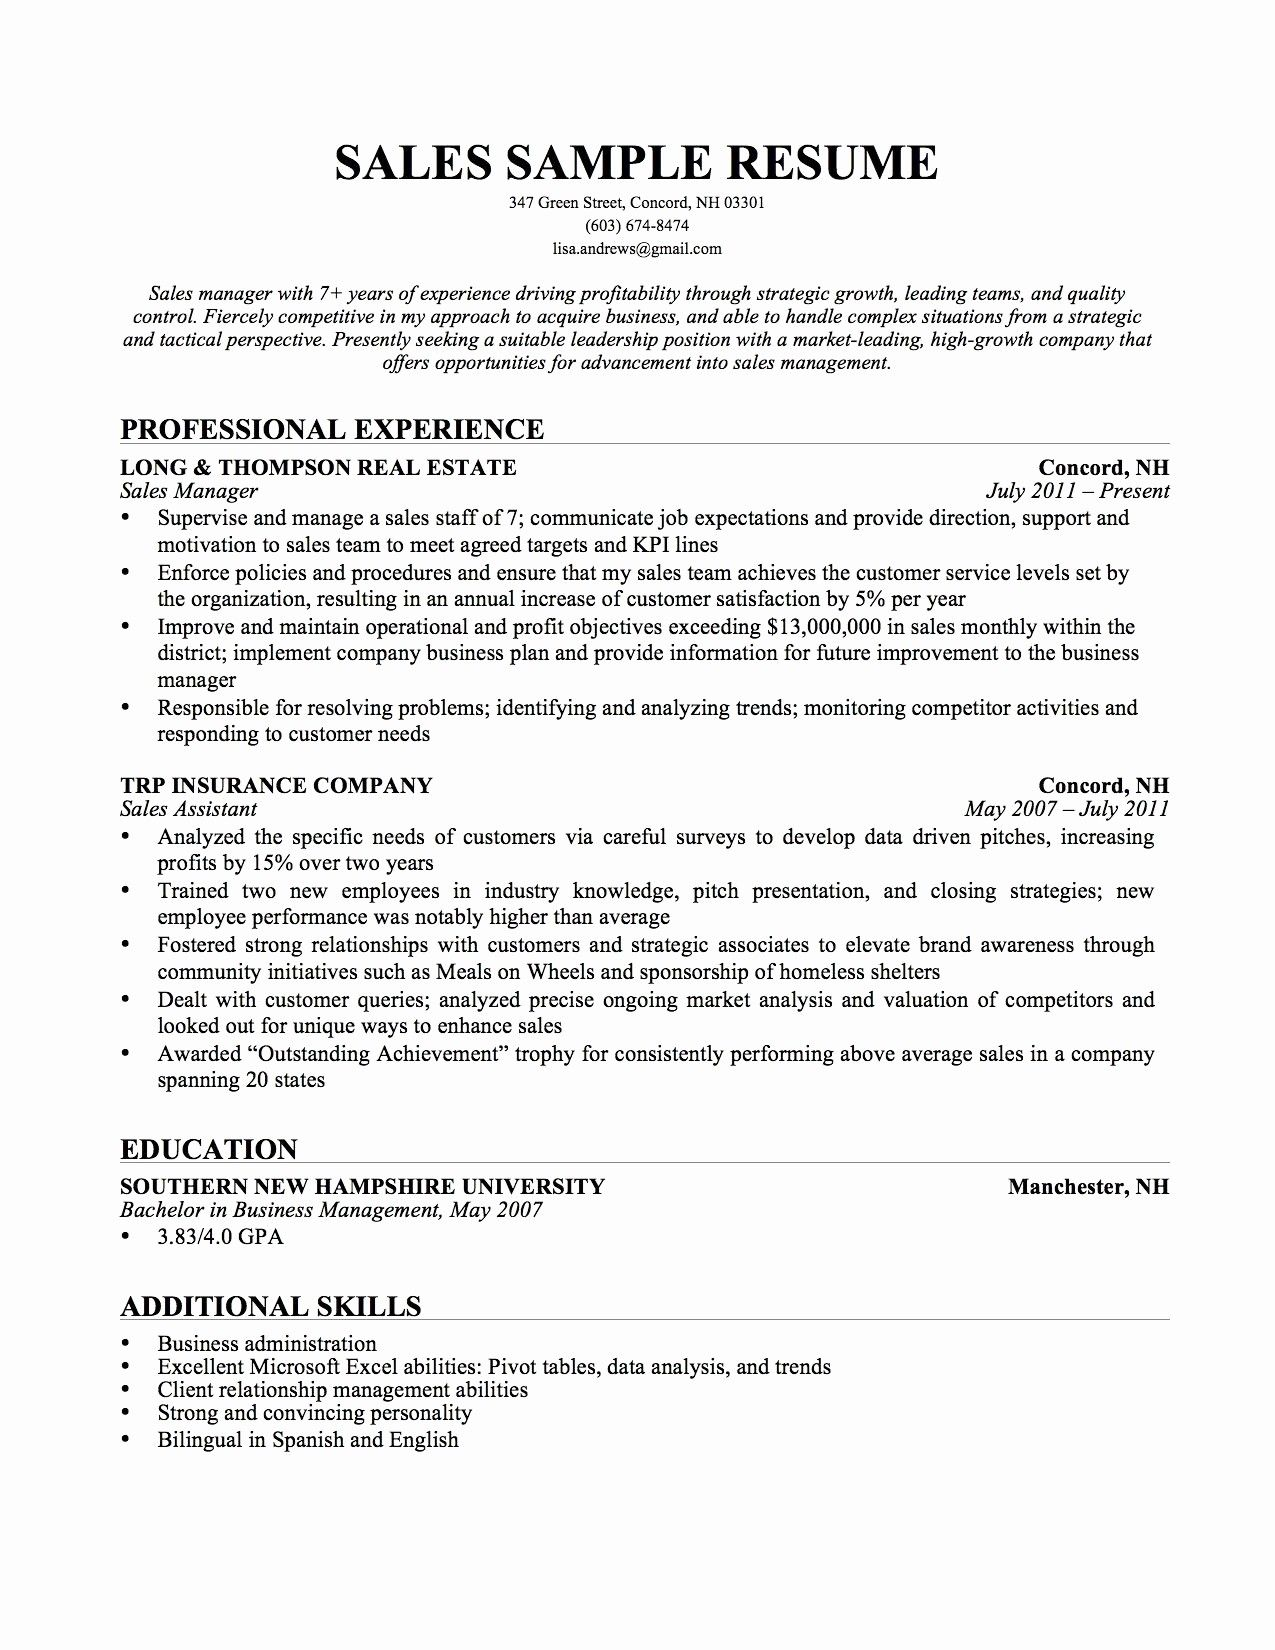 Odt Resume Template Cna Examples Beautiful Awesome